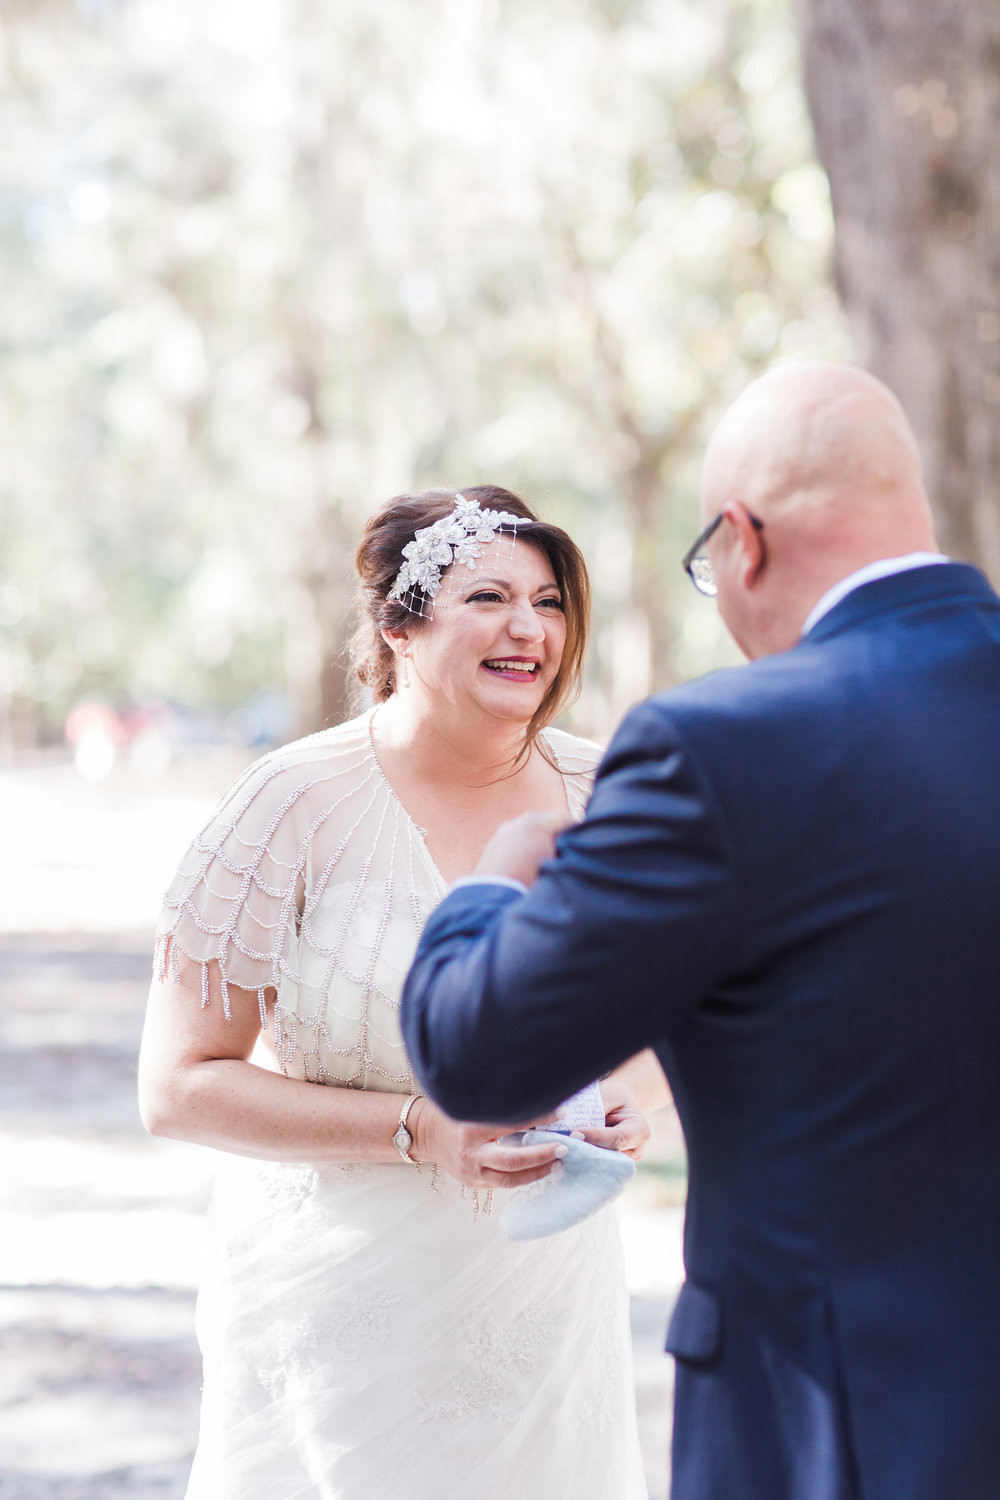 apt-b-photography-kristy-rob-wormsloe-elopment-savannah-wedding-photographer-savannah-elopement-wormsloe-wedding-historic-savannah-elopement-photographer-19.jpg